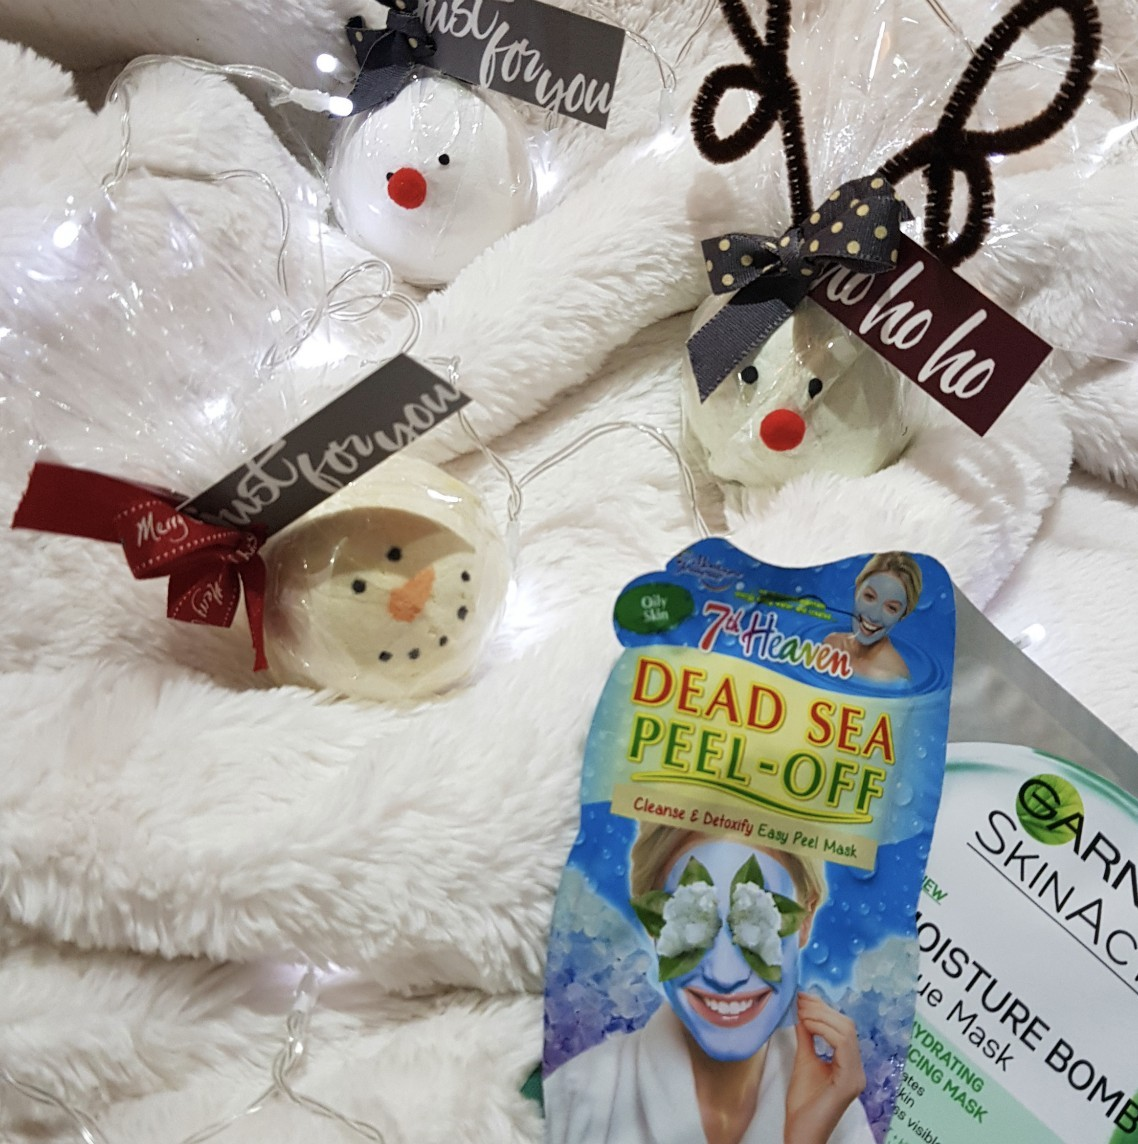 BlogMas Day 3 Self Care Sunday, BlogMas, Christmas, Festive, Festive Season, Holiday Season, Holiday Spirit, Christmas Spirit, Holly Jolly Christmas, Christmas Time, Self Care, Self Care Sunday, Sundays, Skin Care, Self Love, Positivity, Blogger, Blog A Book Etc, Fay